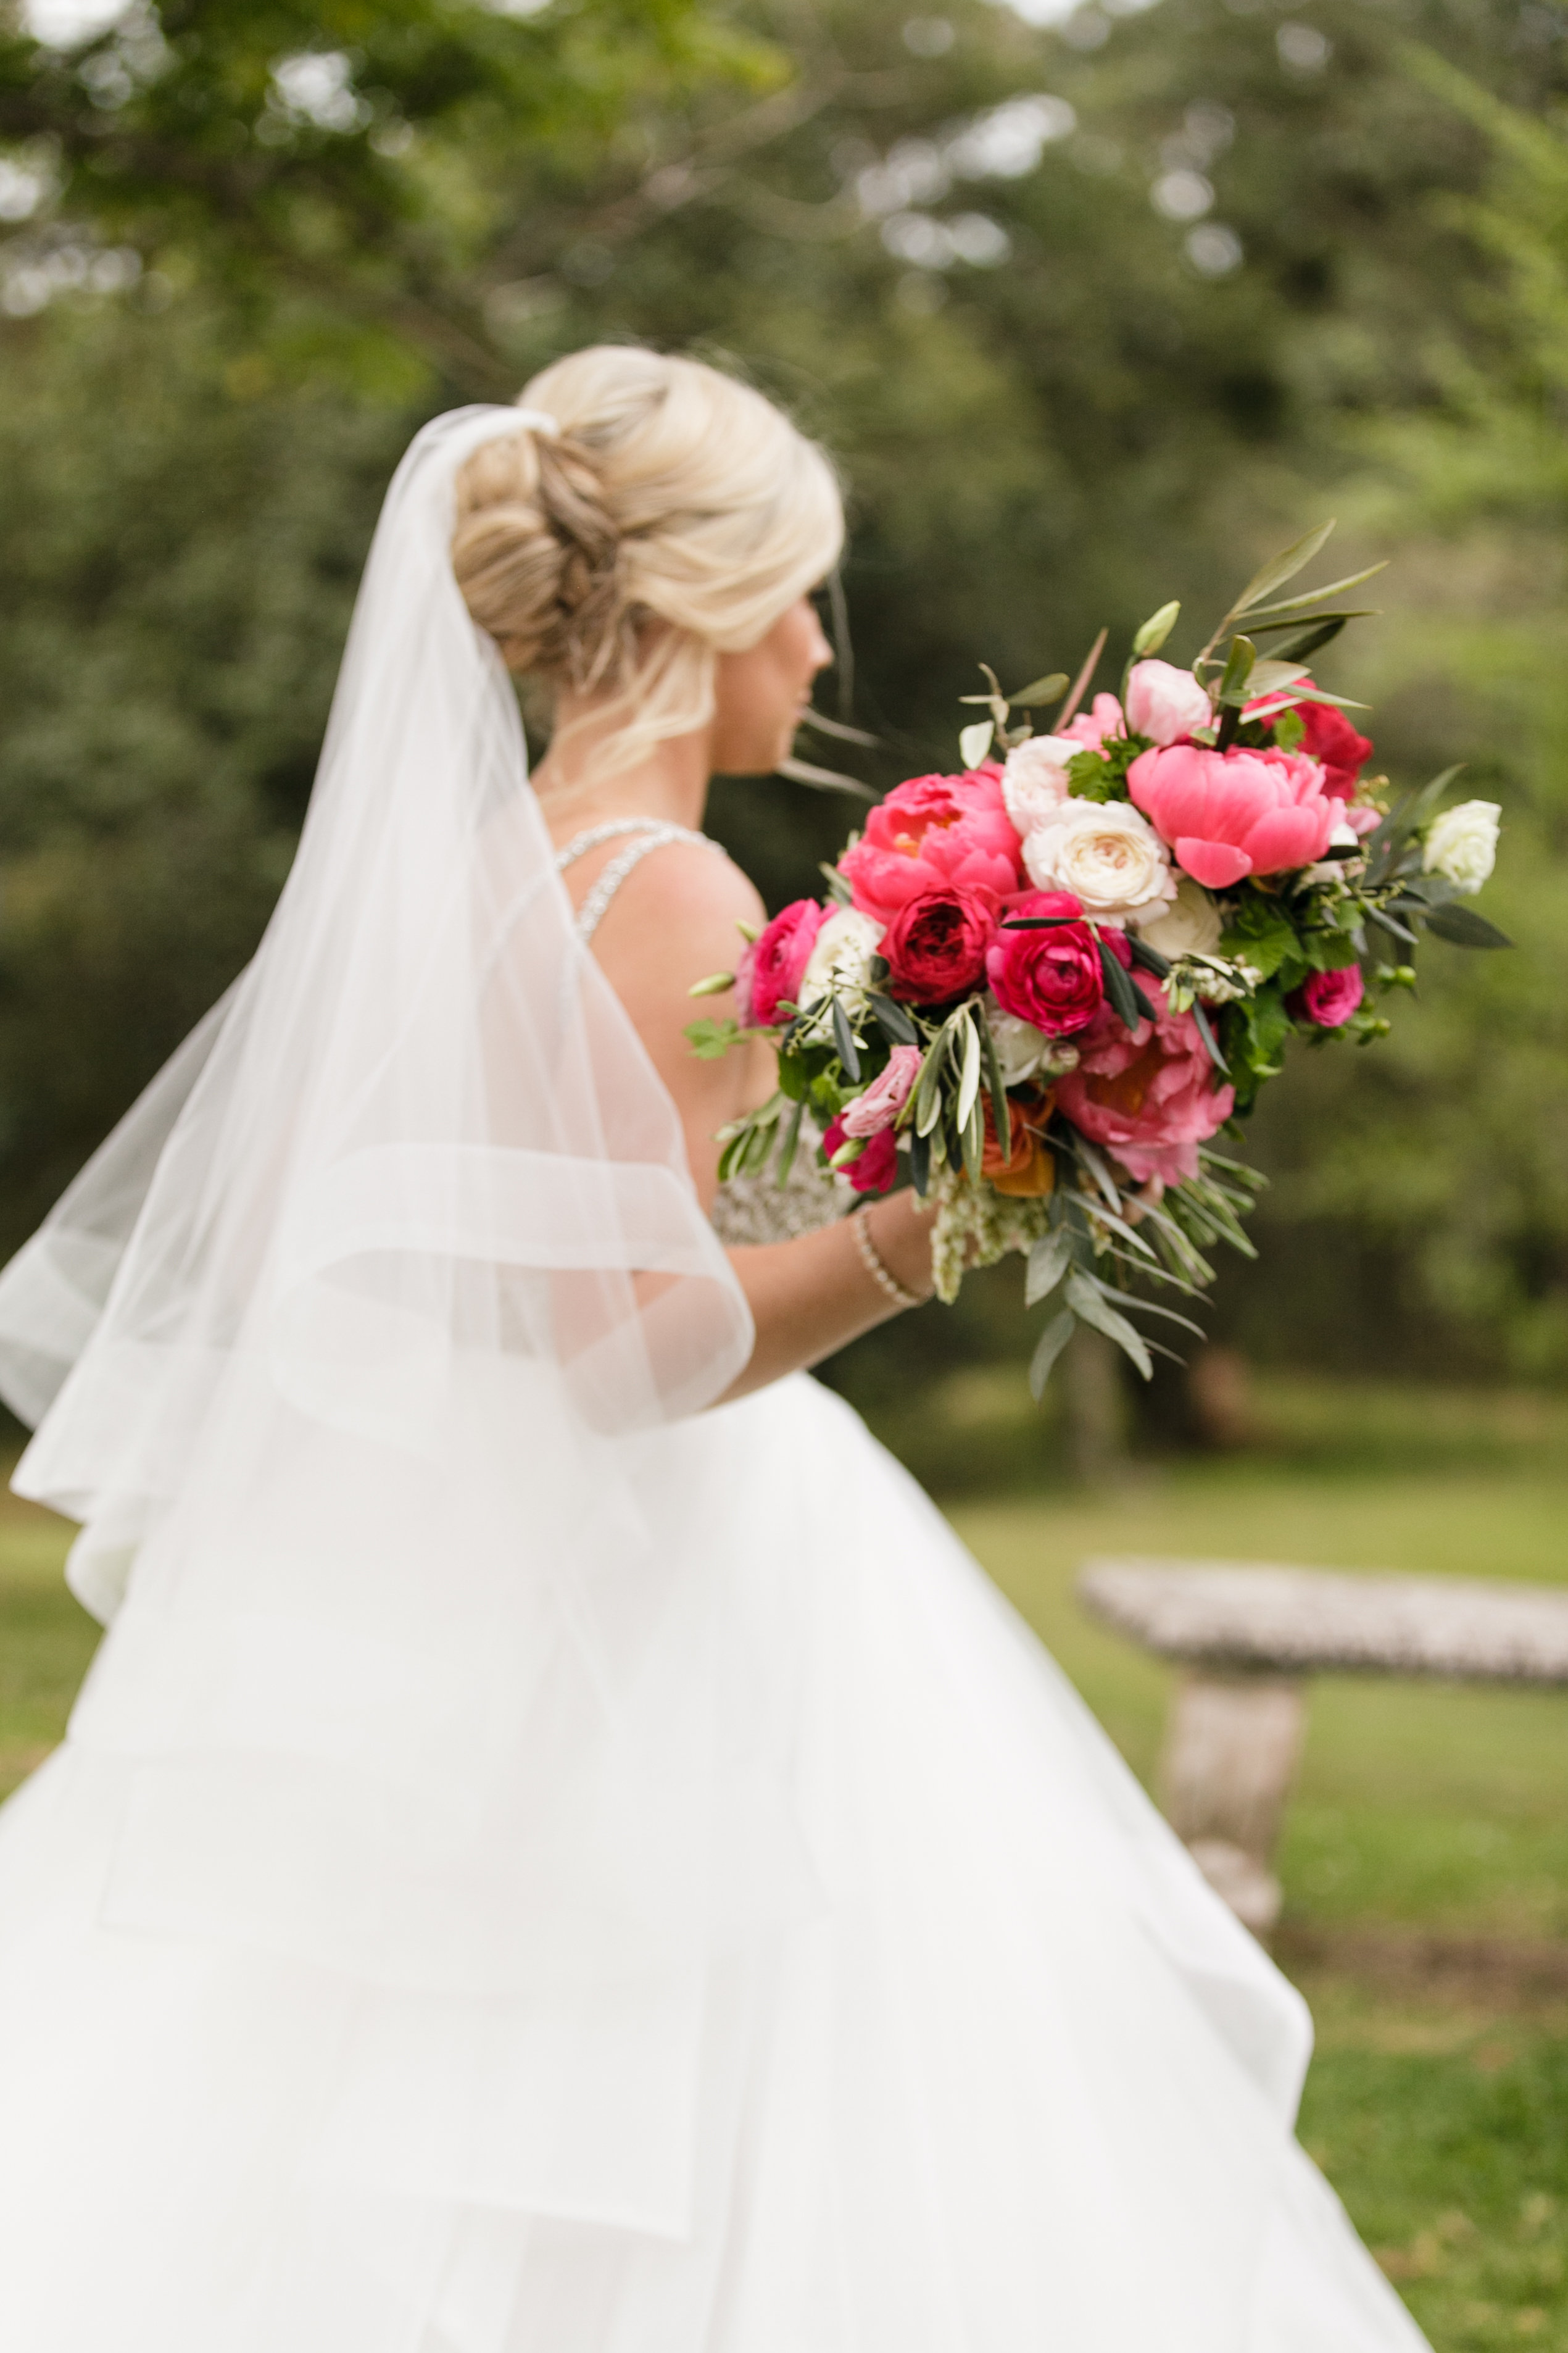 Bridal Bouquet with Coral Peonies